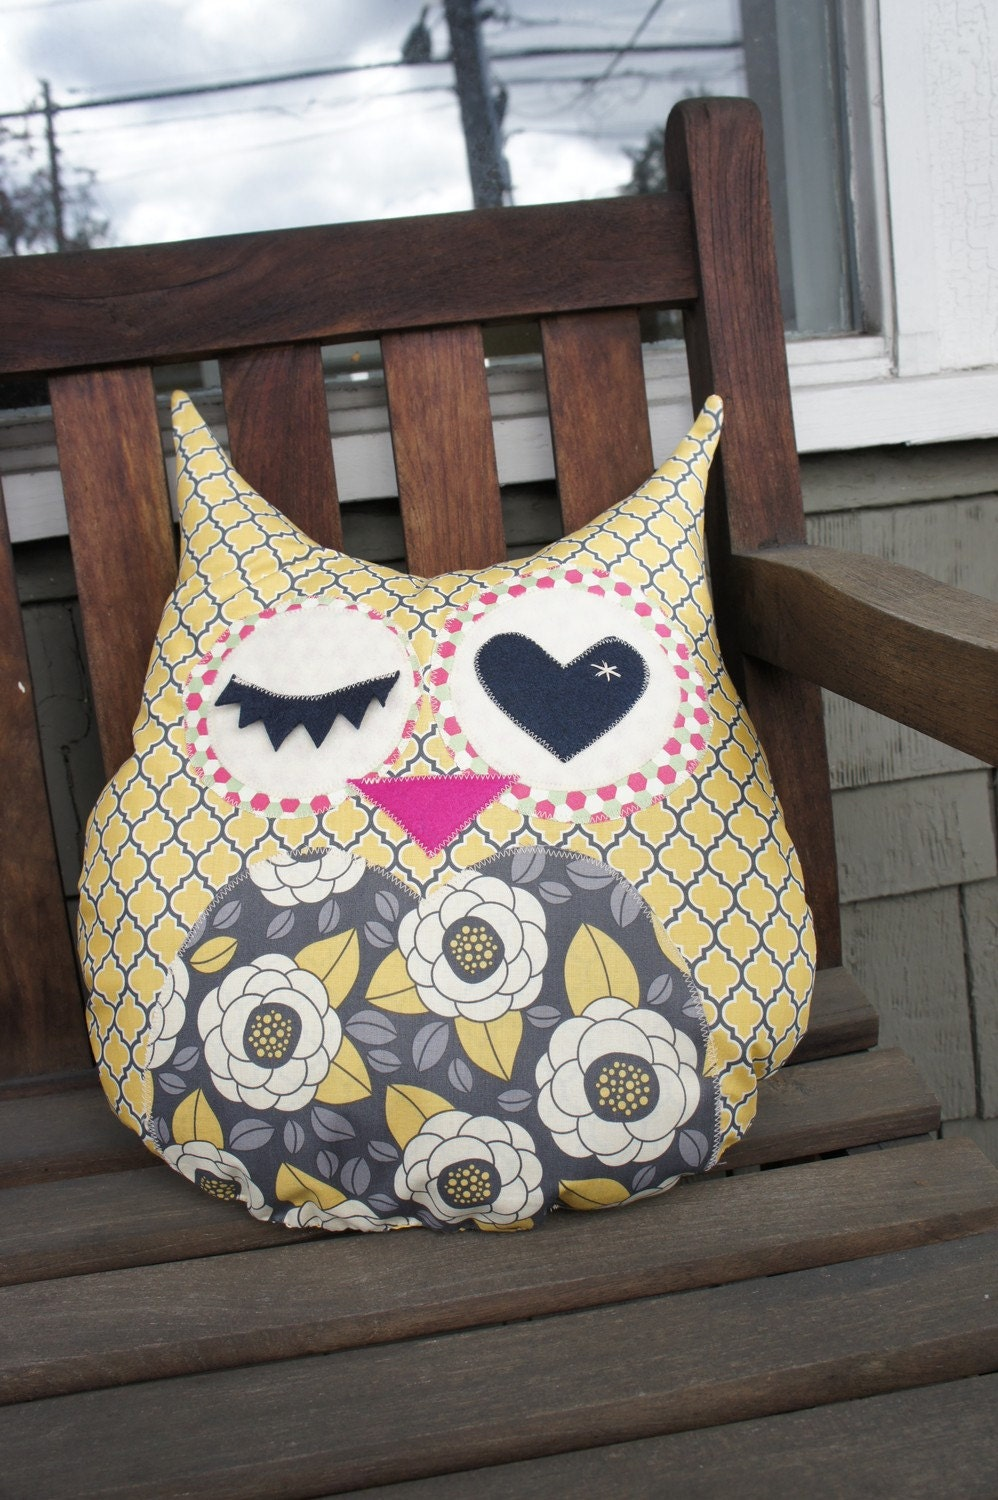 Large Owl Decorative Pillow - Yellow & Gray - Ready to ship